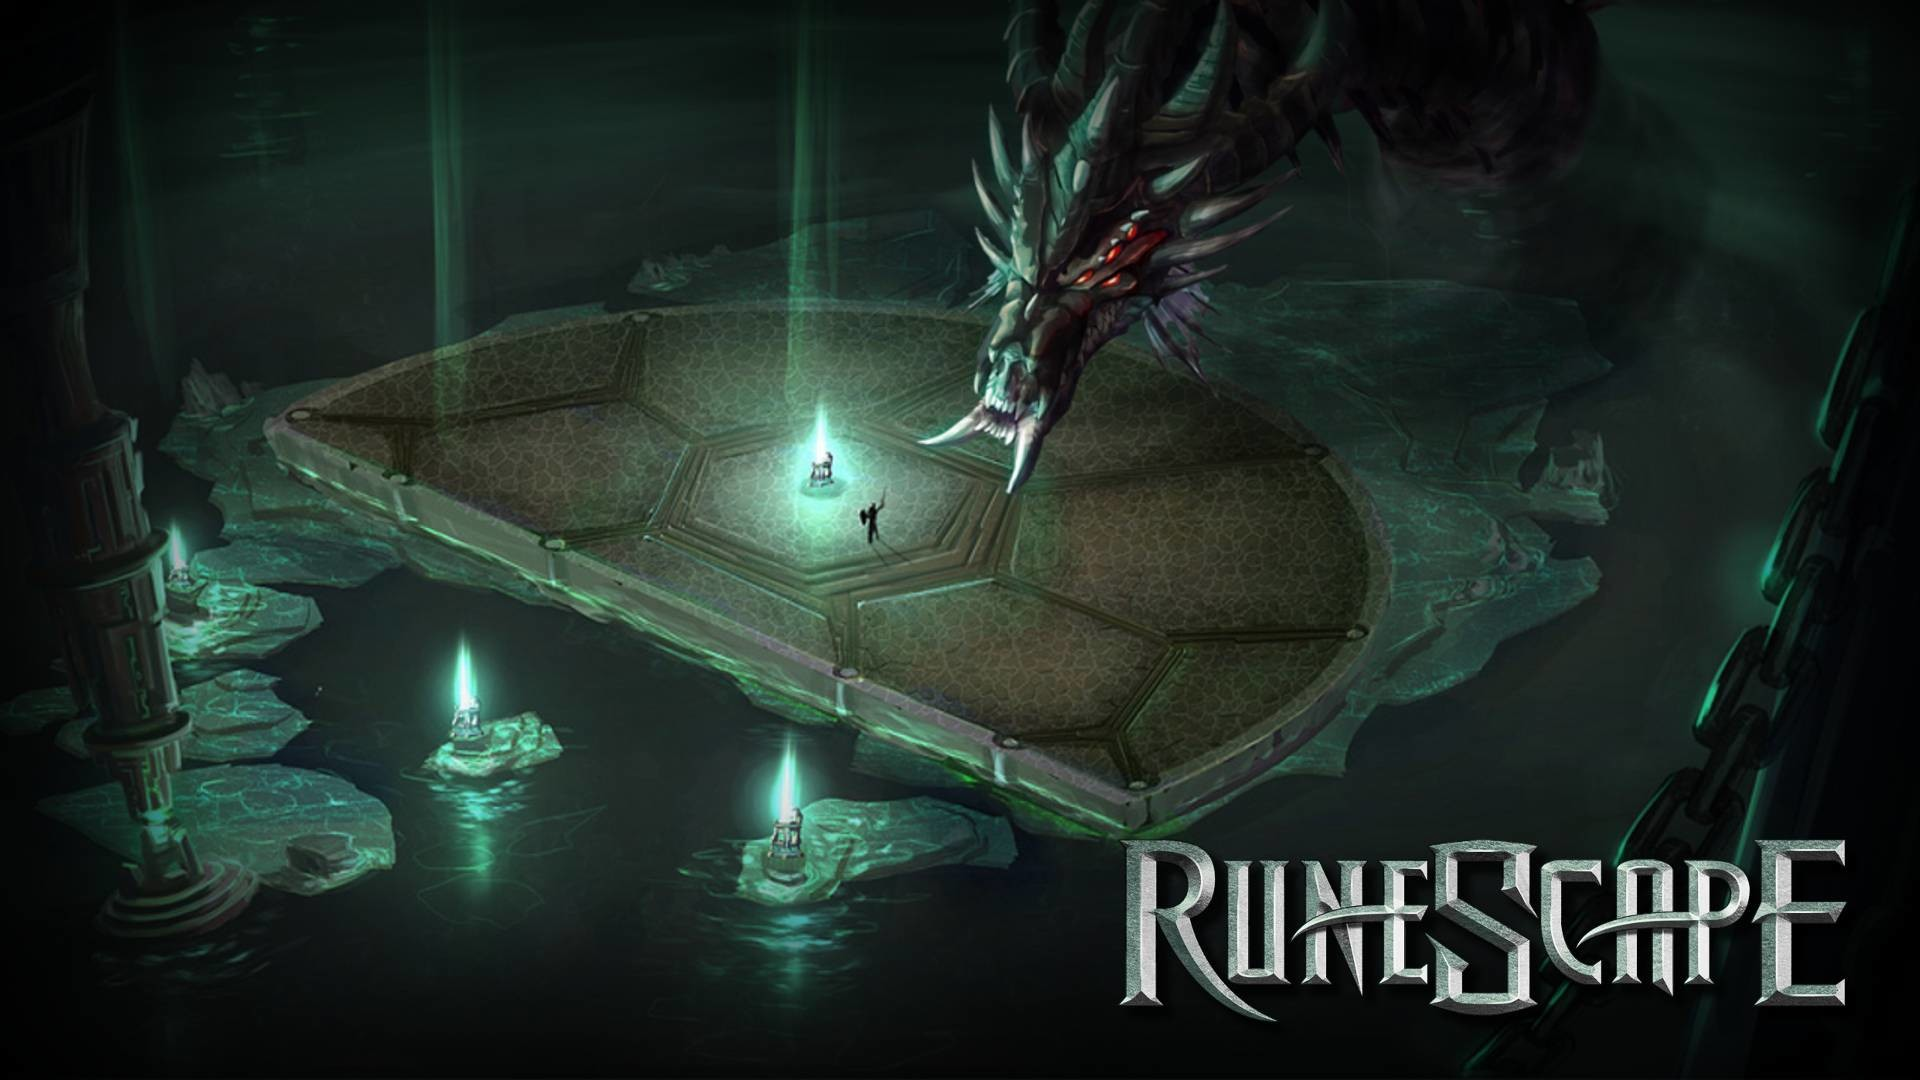 Old School Runescape Wallpaper (81+ images)